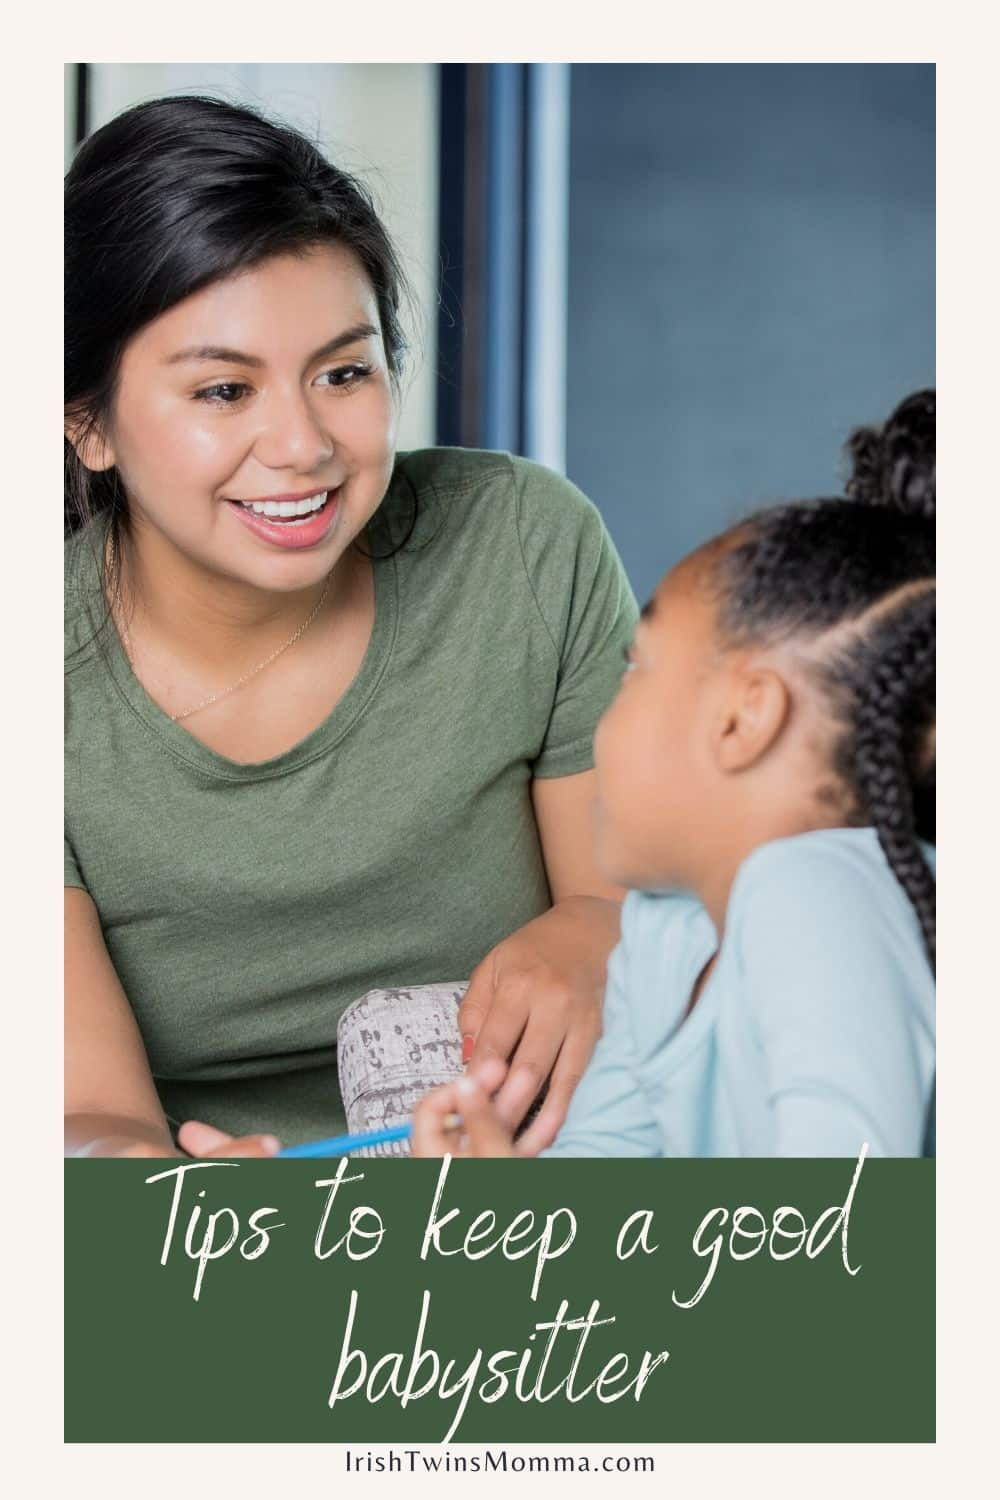 Choosing someone who will care for and protect your children, as well as get along well with them, is no easy task. However, there are plenty of resources available to help you find the right sitter. Take the time to interview them and watch them interact. via @irishtwinsmom11